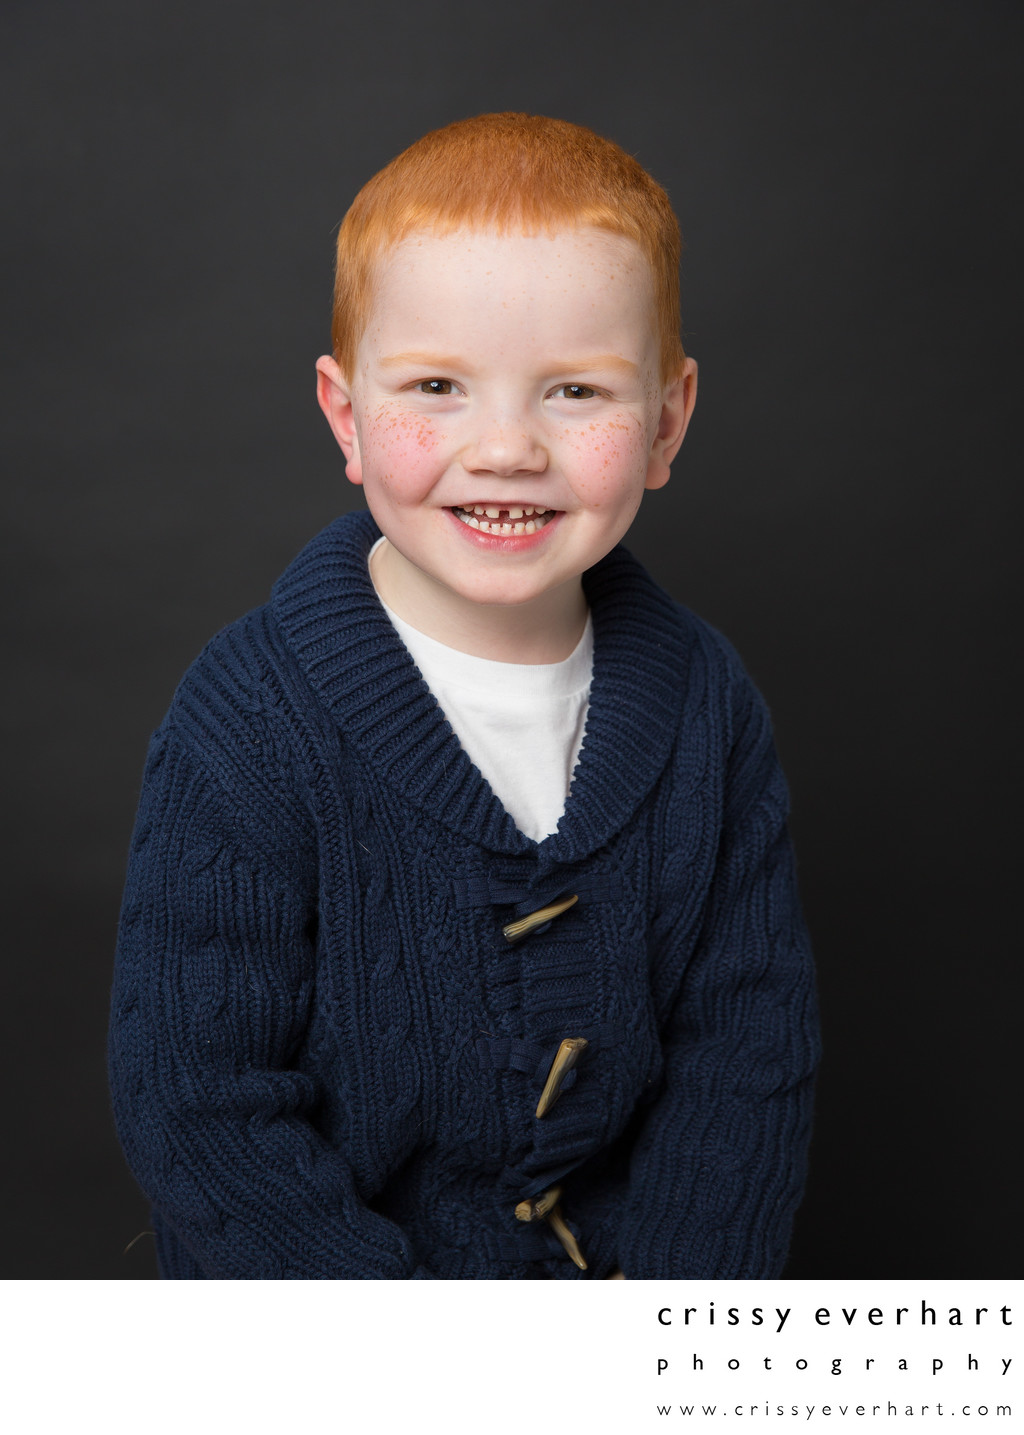 Traditional Children's Portraiture - Studio Photos